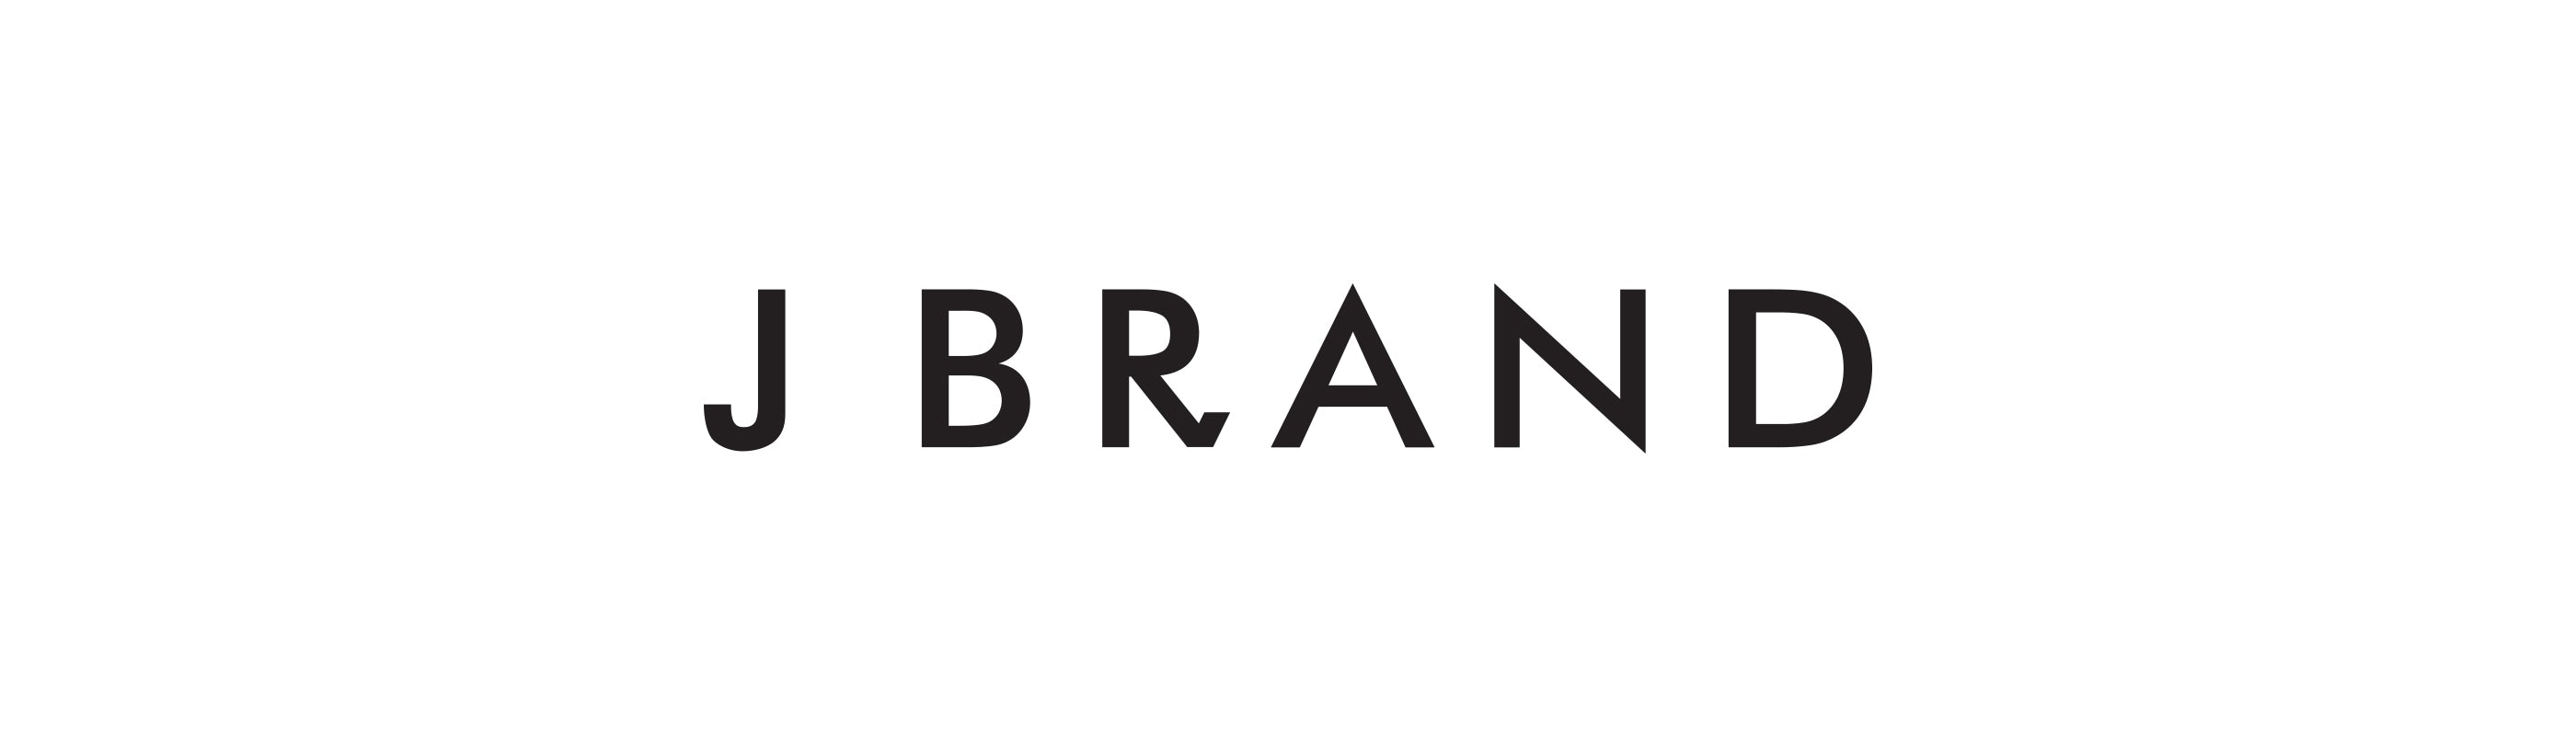 Profile image for J Brand